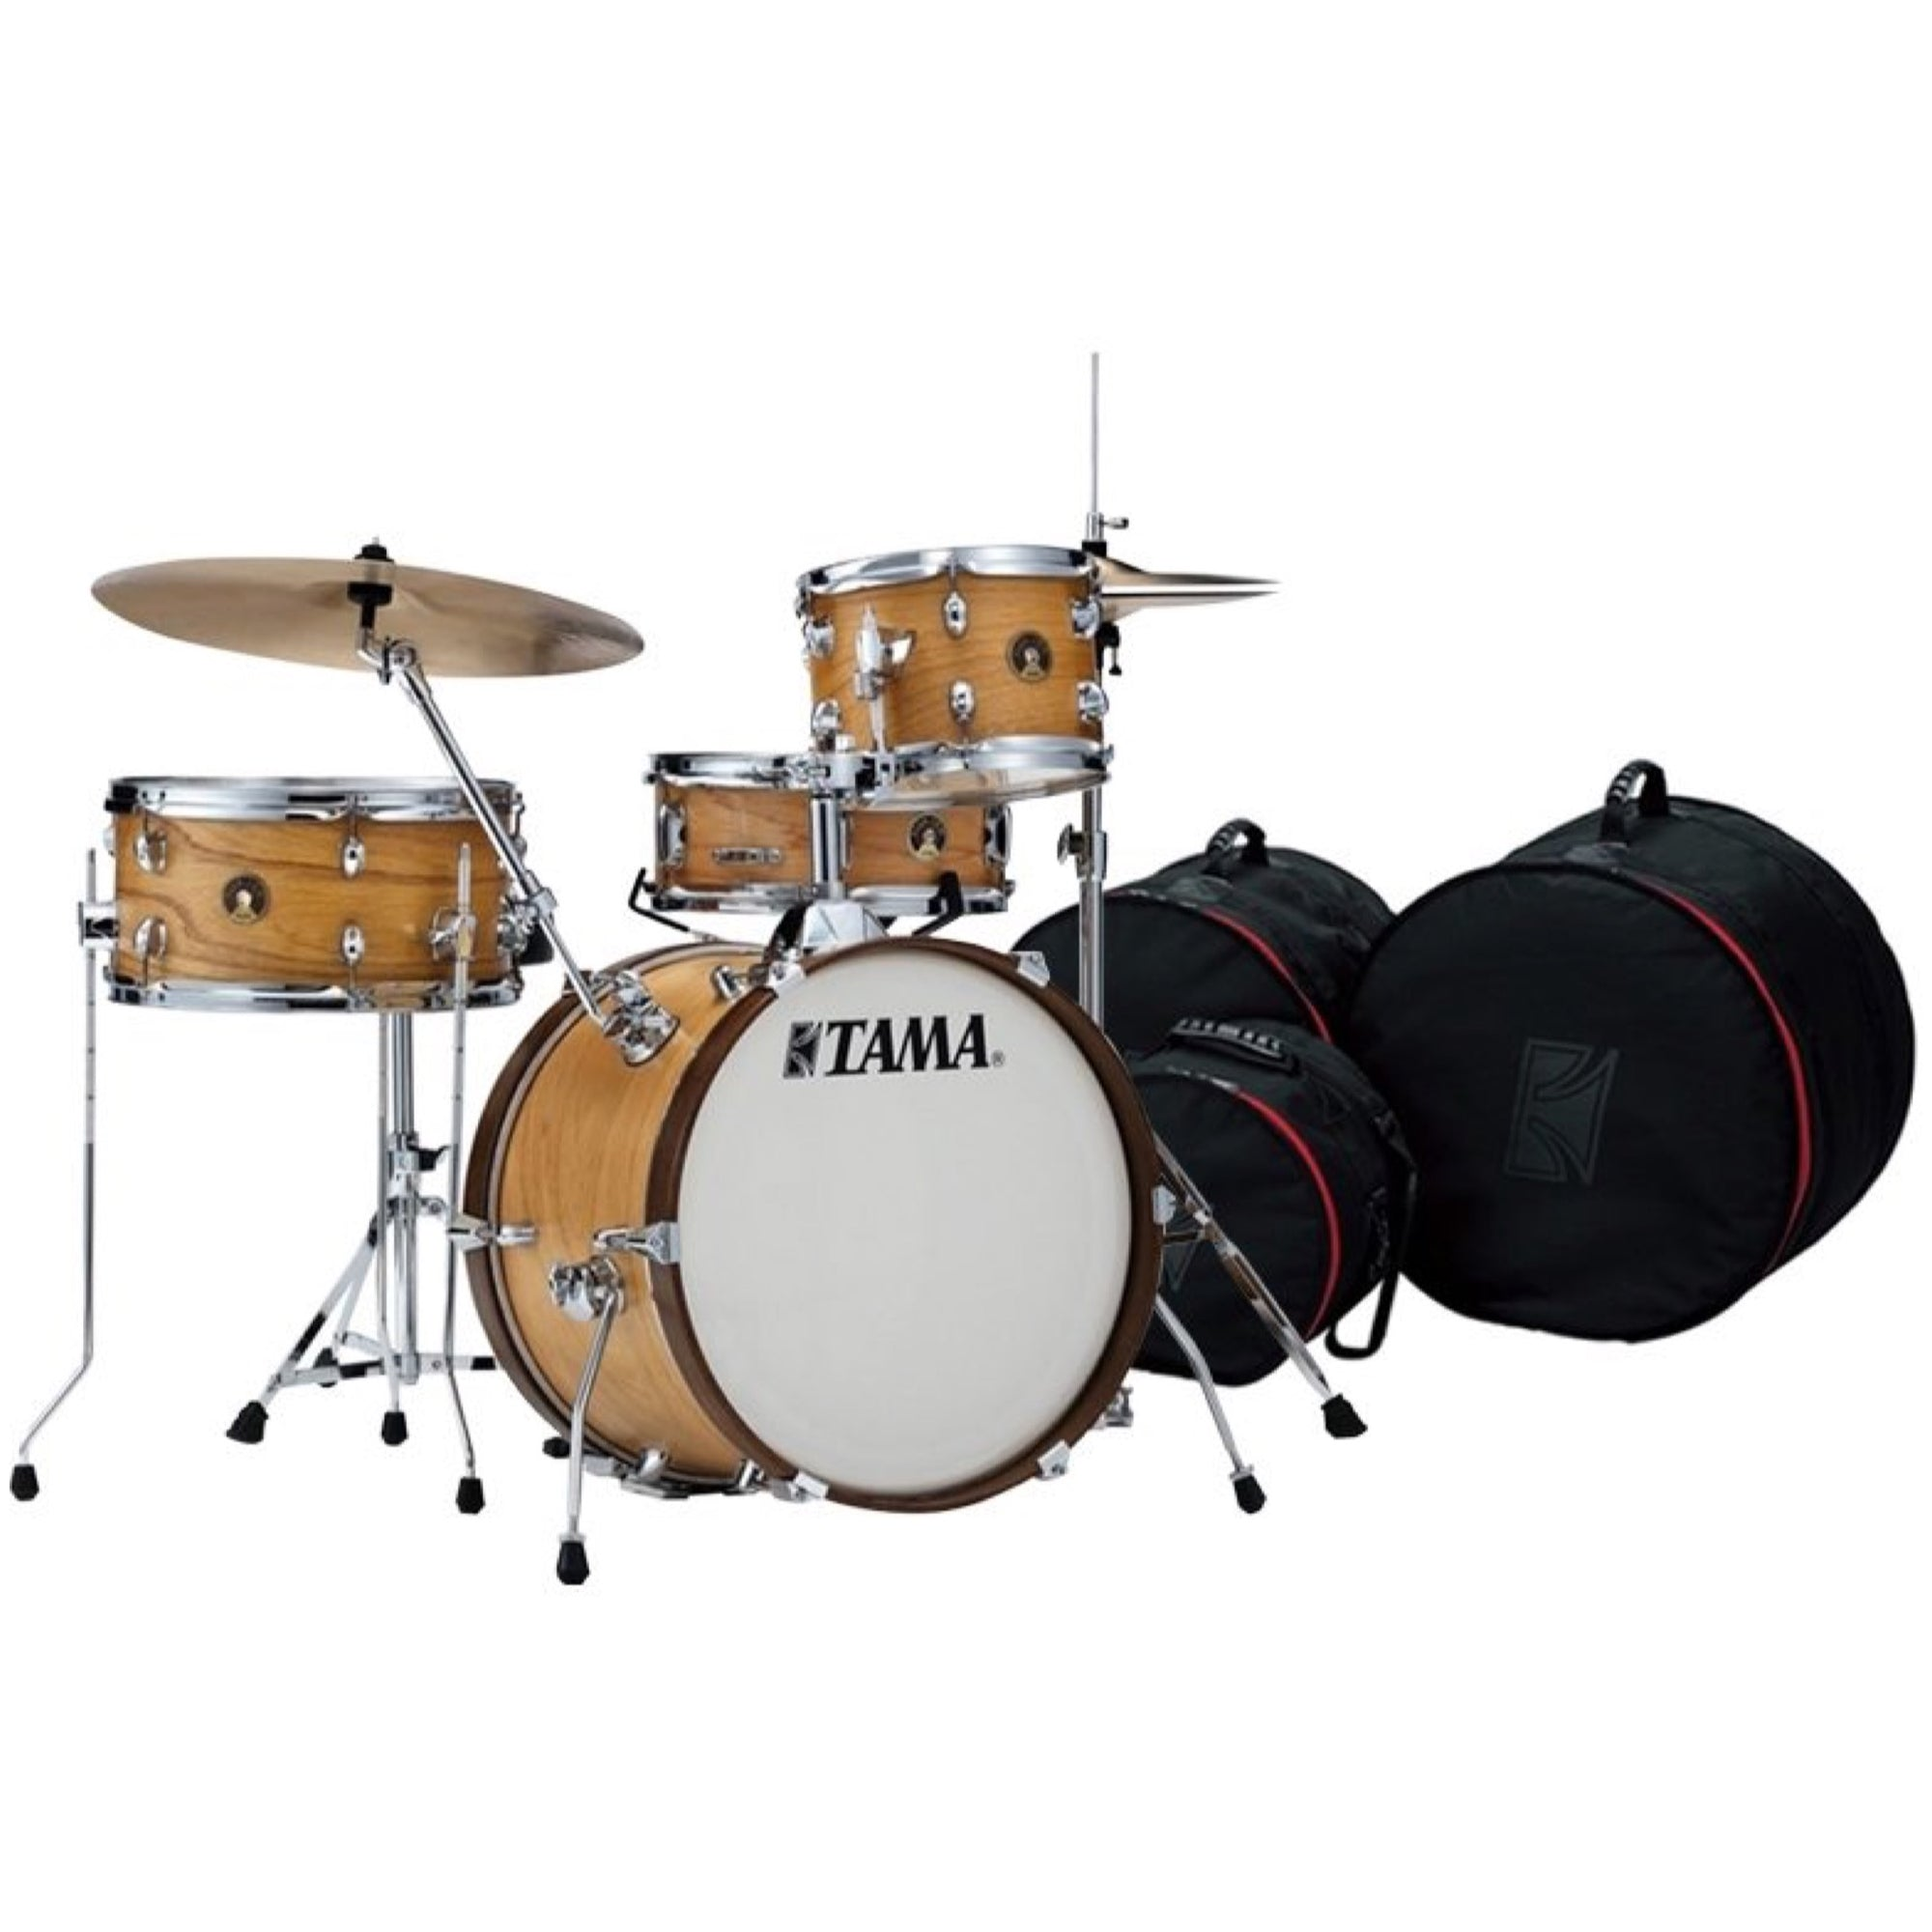 Tama Club Jam Drum Shell Kit, 4-Piece, Satin Blonde, with Drum Bags